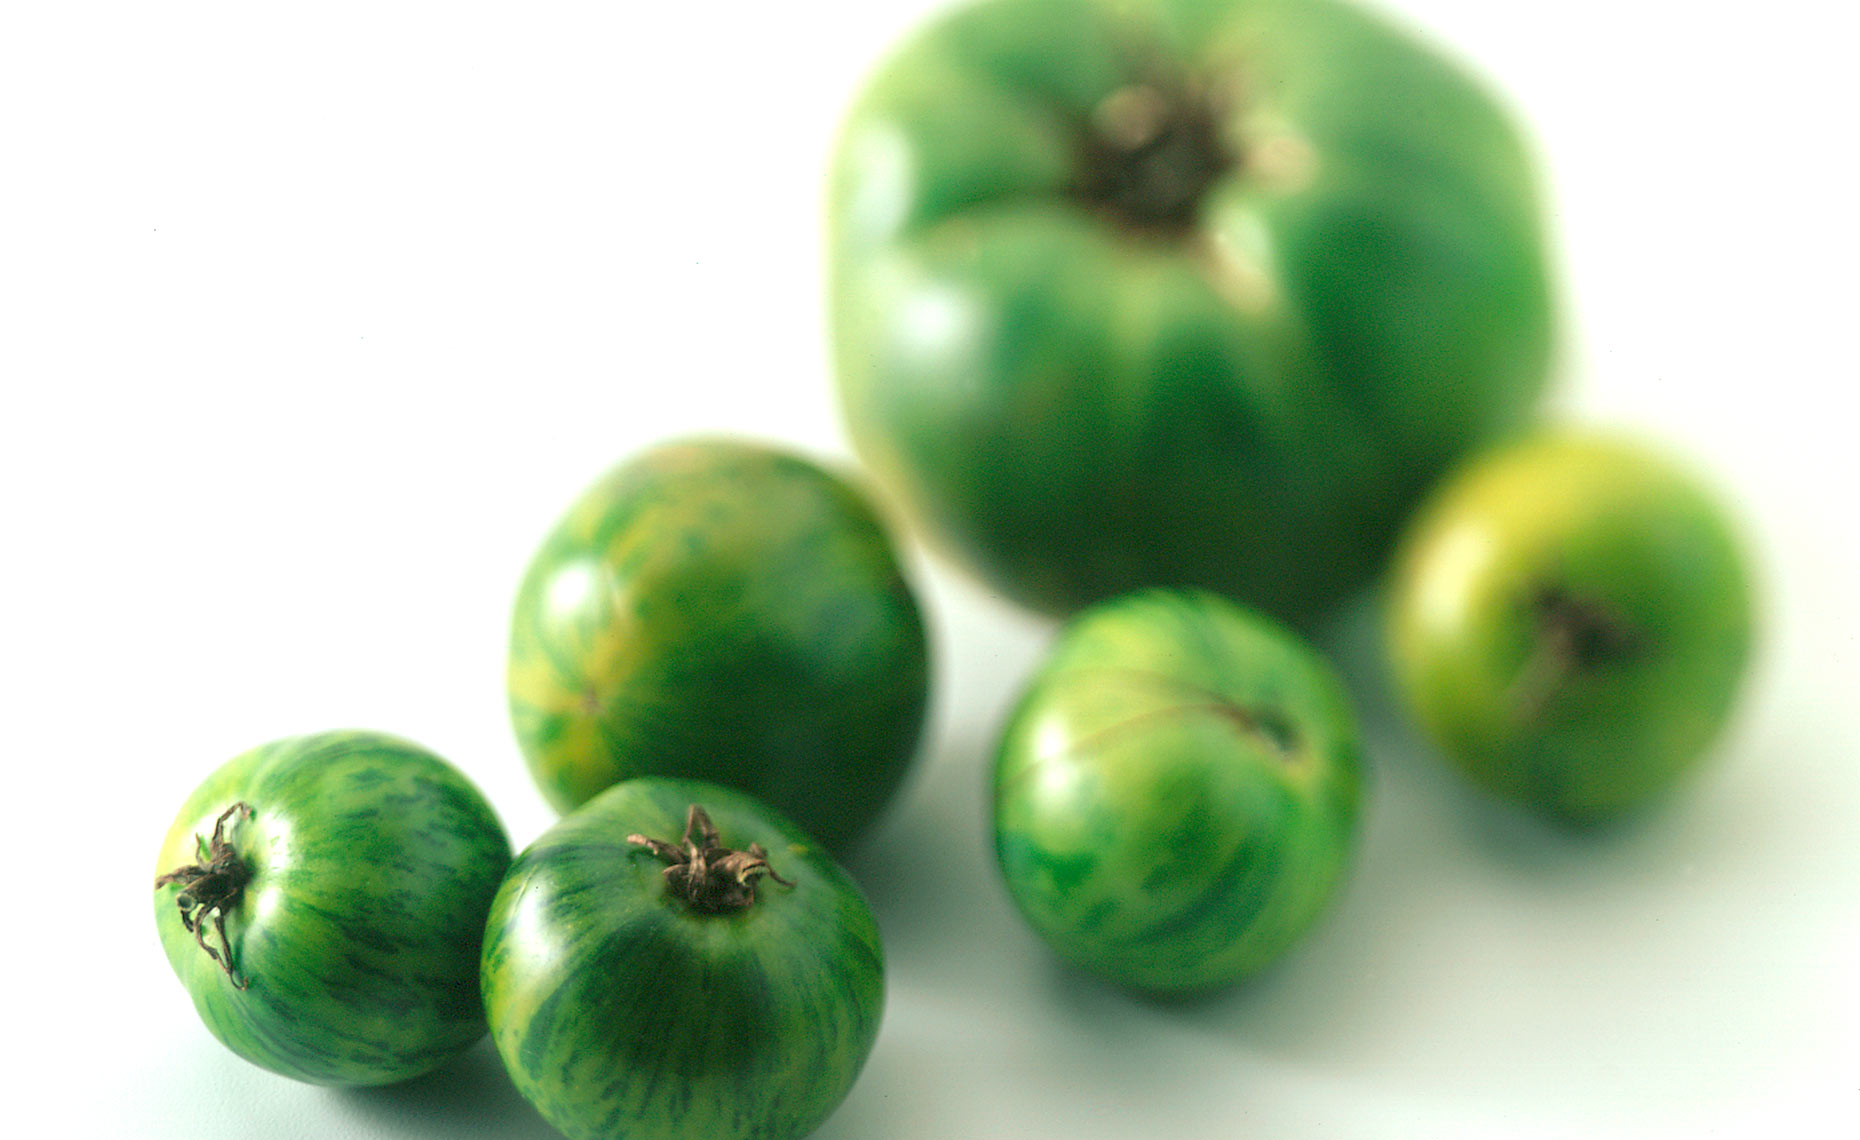 maryland-food-photographers-tomatoes-green-24